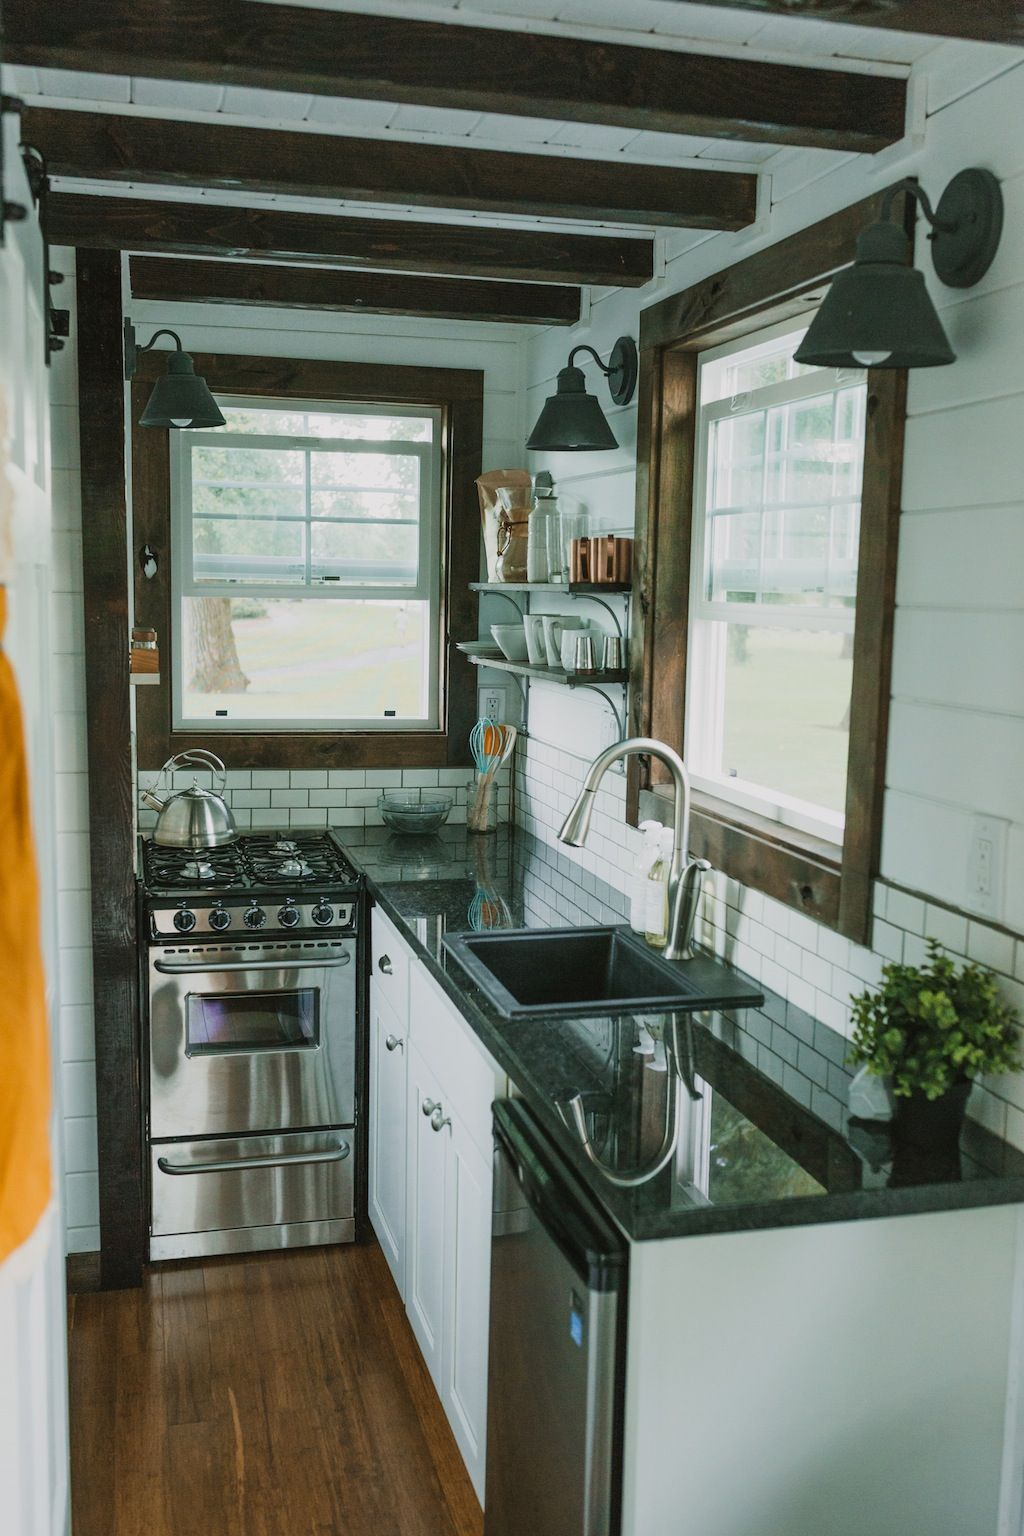 Tiny Heirloom: Builder of Luxury Tiny Homes on Wheels | Cocinas ...